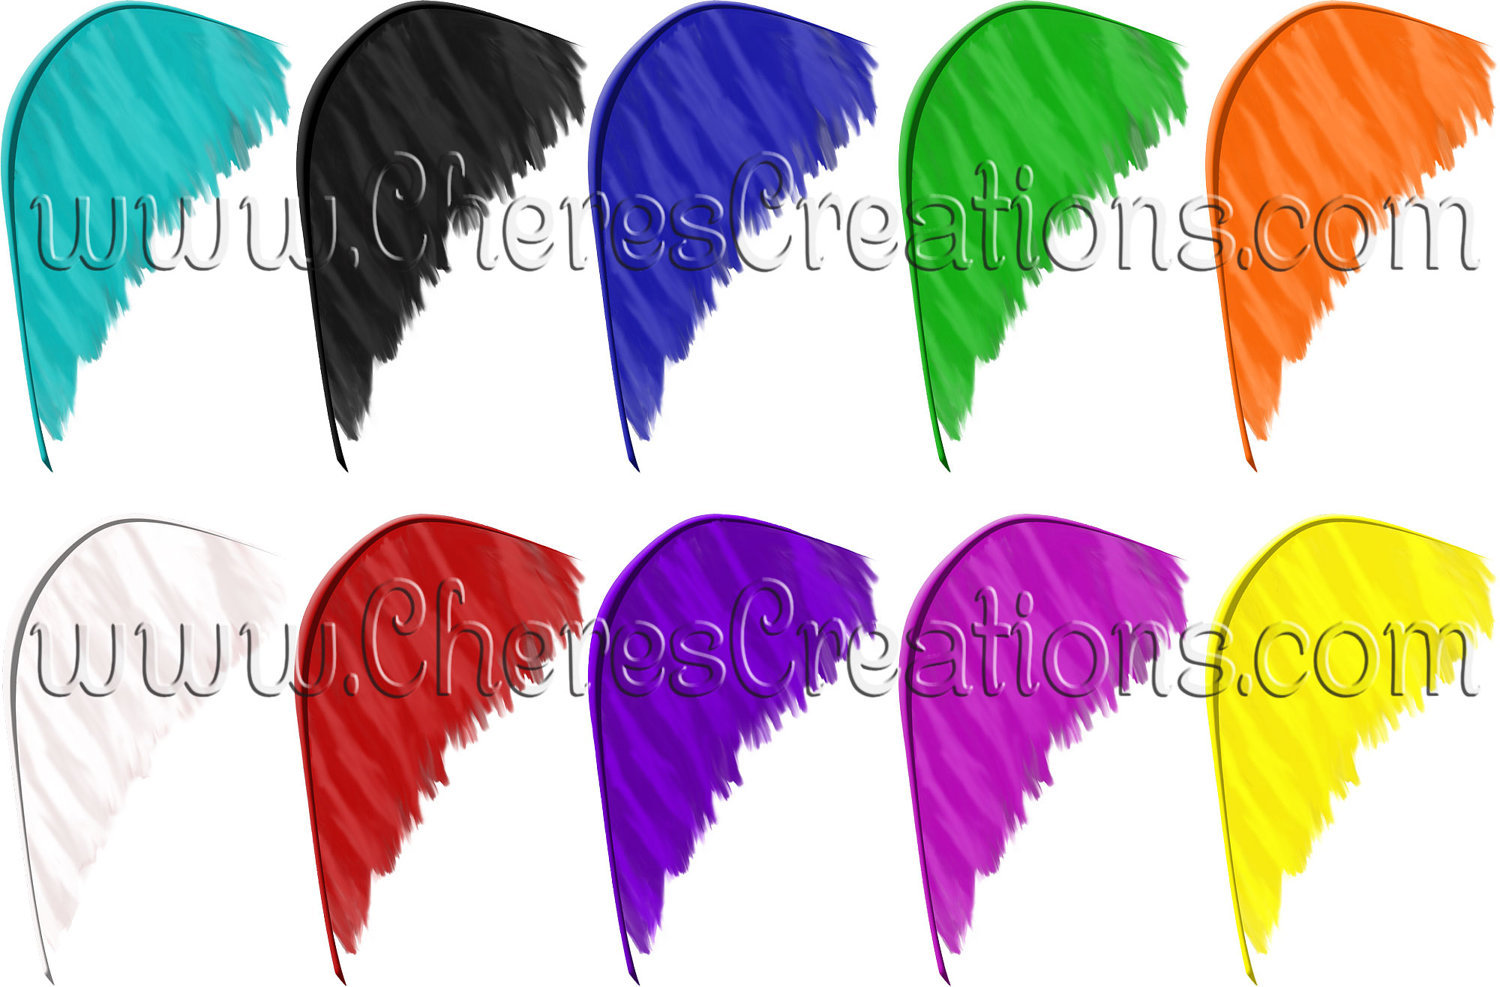 Color Feathers Clip Art for Digital Scap Booking Craft Scrapbooking